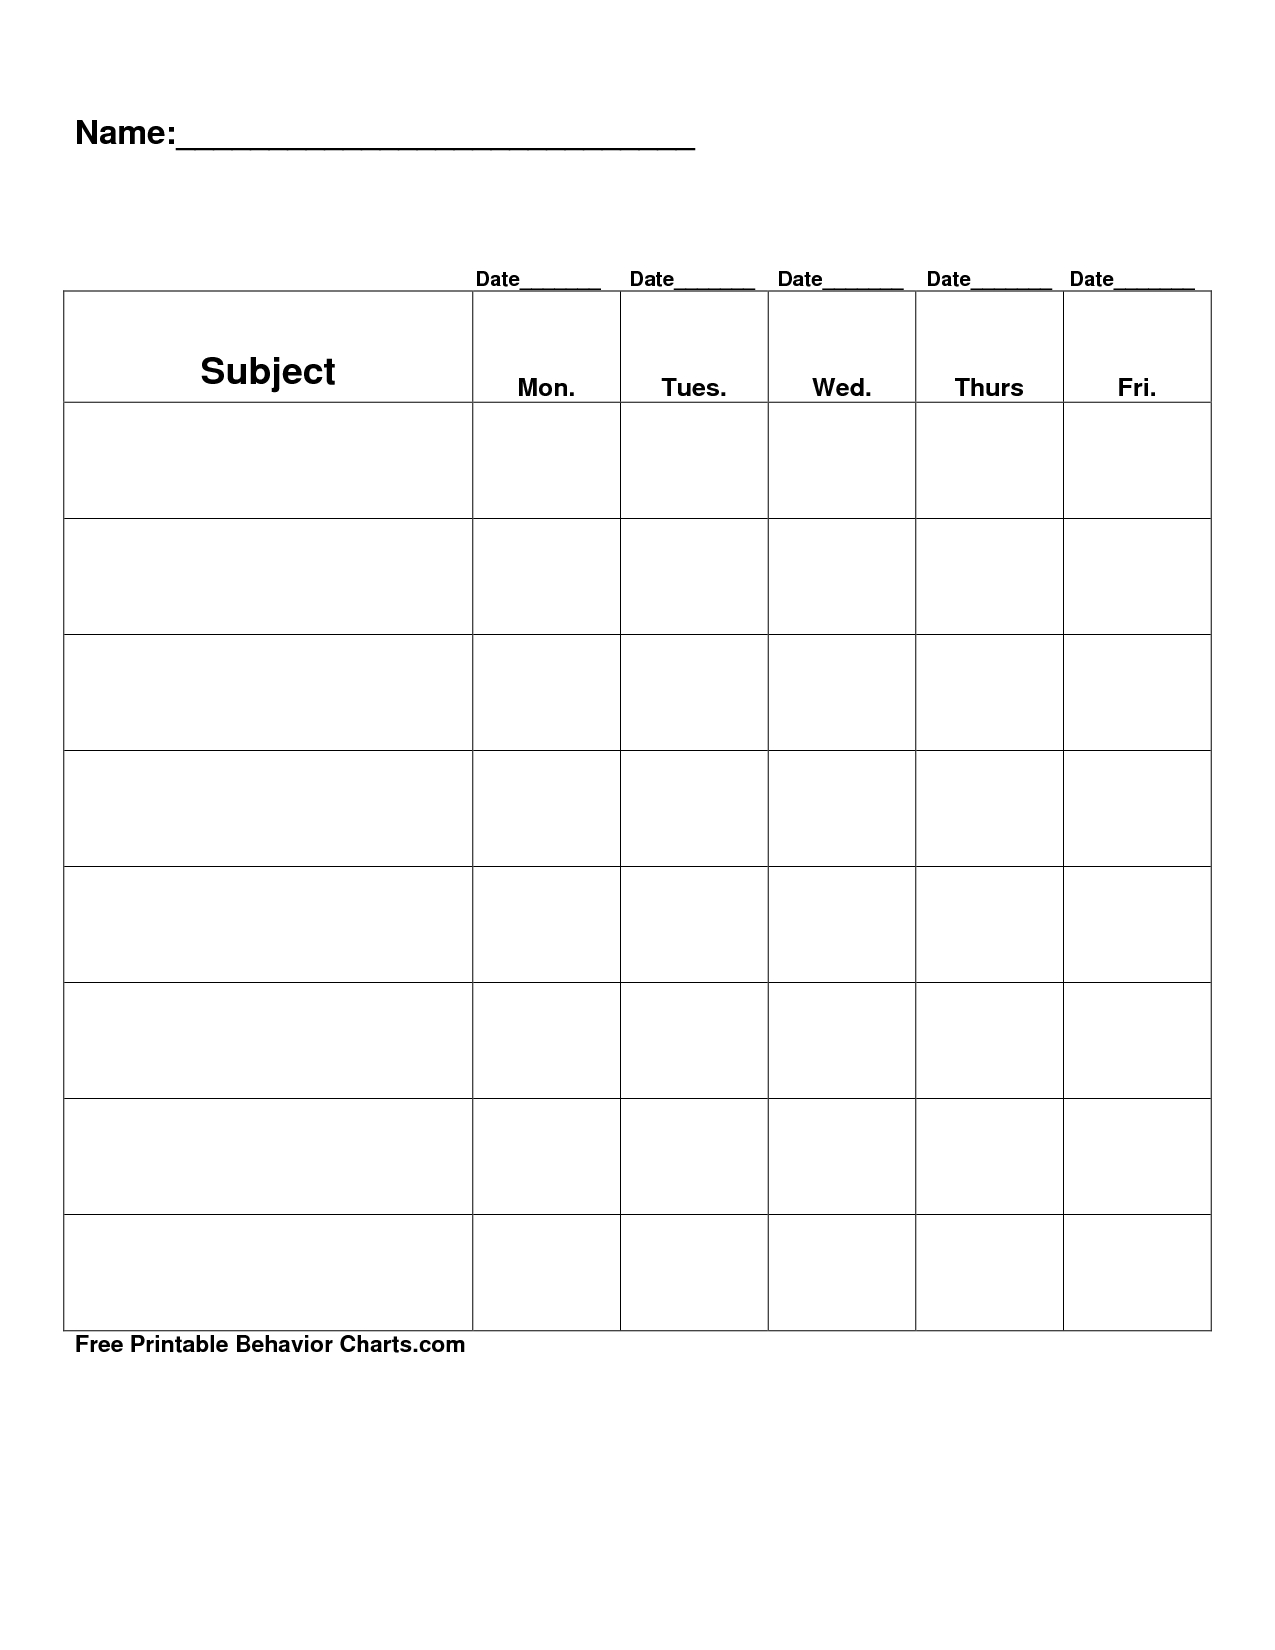 Free Printable Blank Charts | Free Printable Behavior Charts Com regarding Free Printable Blank Behavior Charts